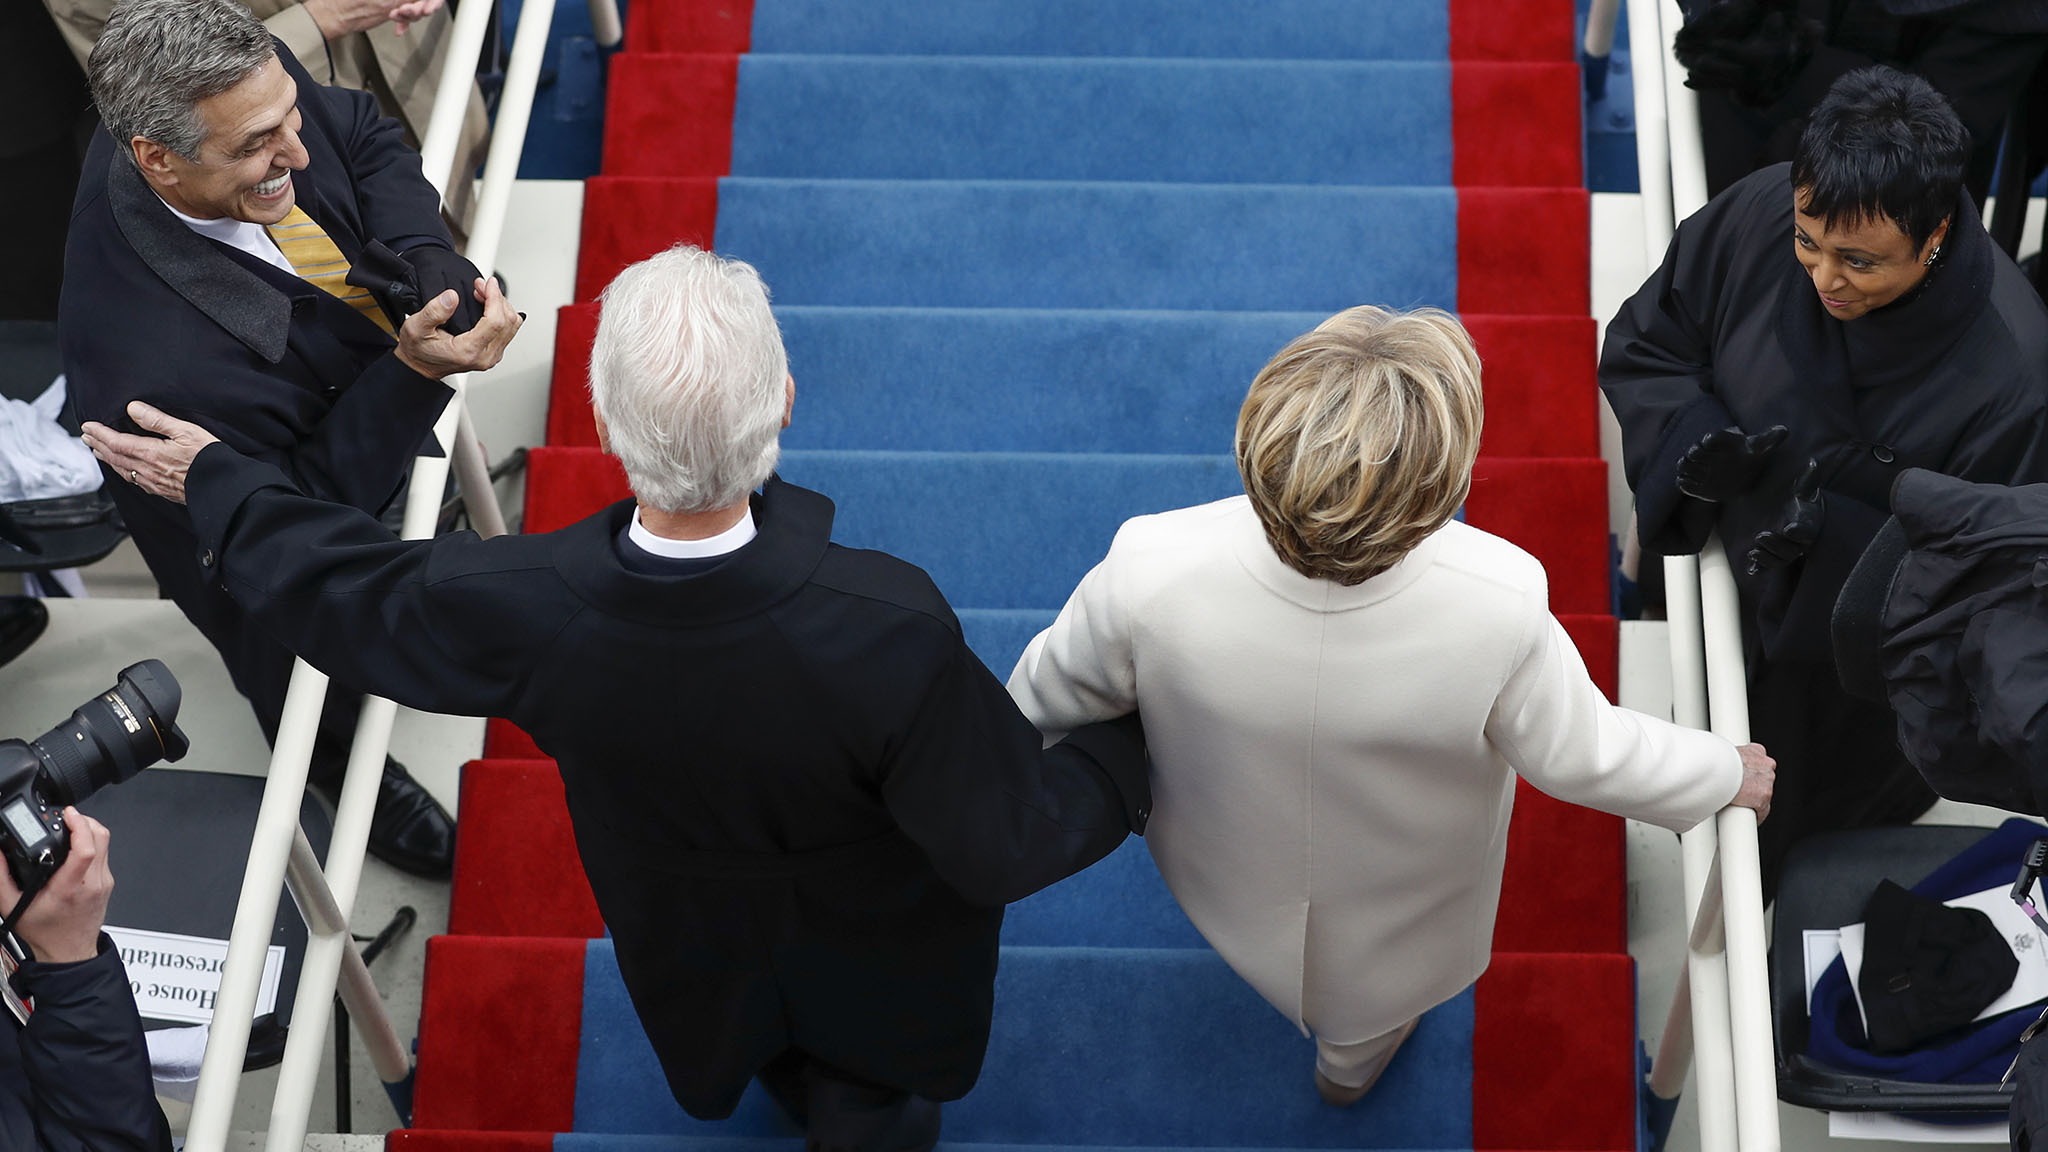 Former President Bill Clinton and Hillary Clinton arrive during the 58th Presidential Inauguration at the U.S. Capitol in Washington, Friday, Jan. 20, 2017. (AP Photo/Carolyn Kaster)